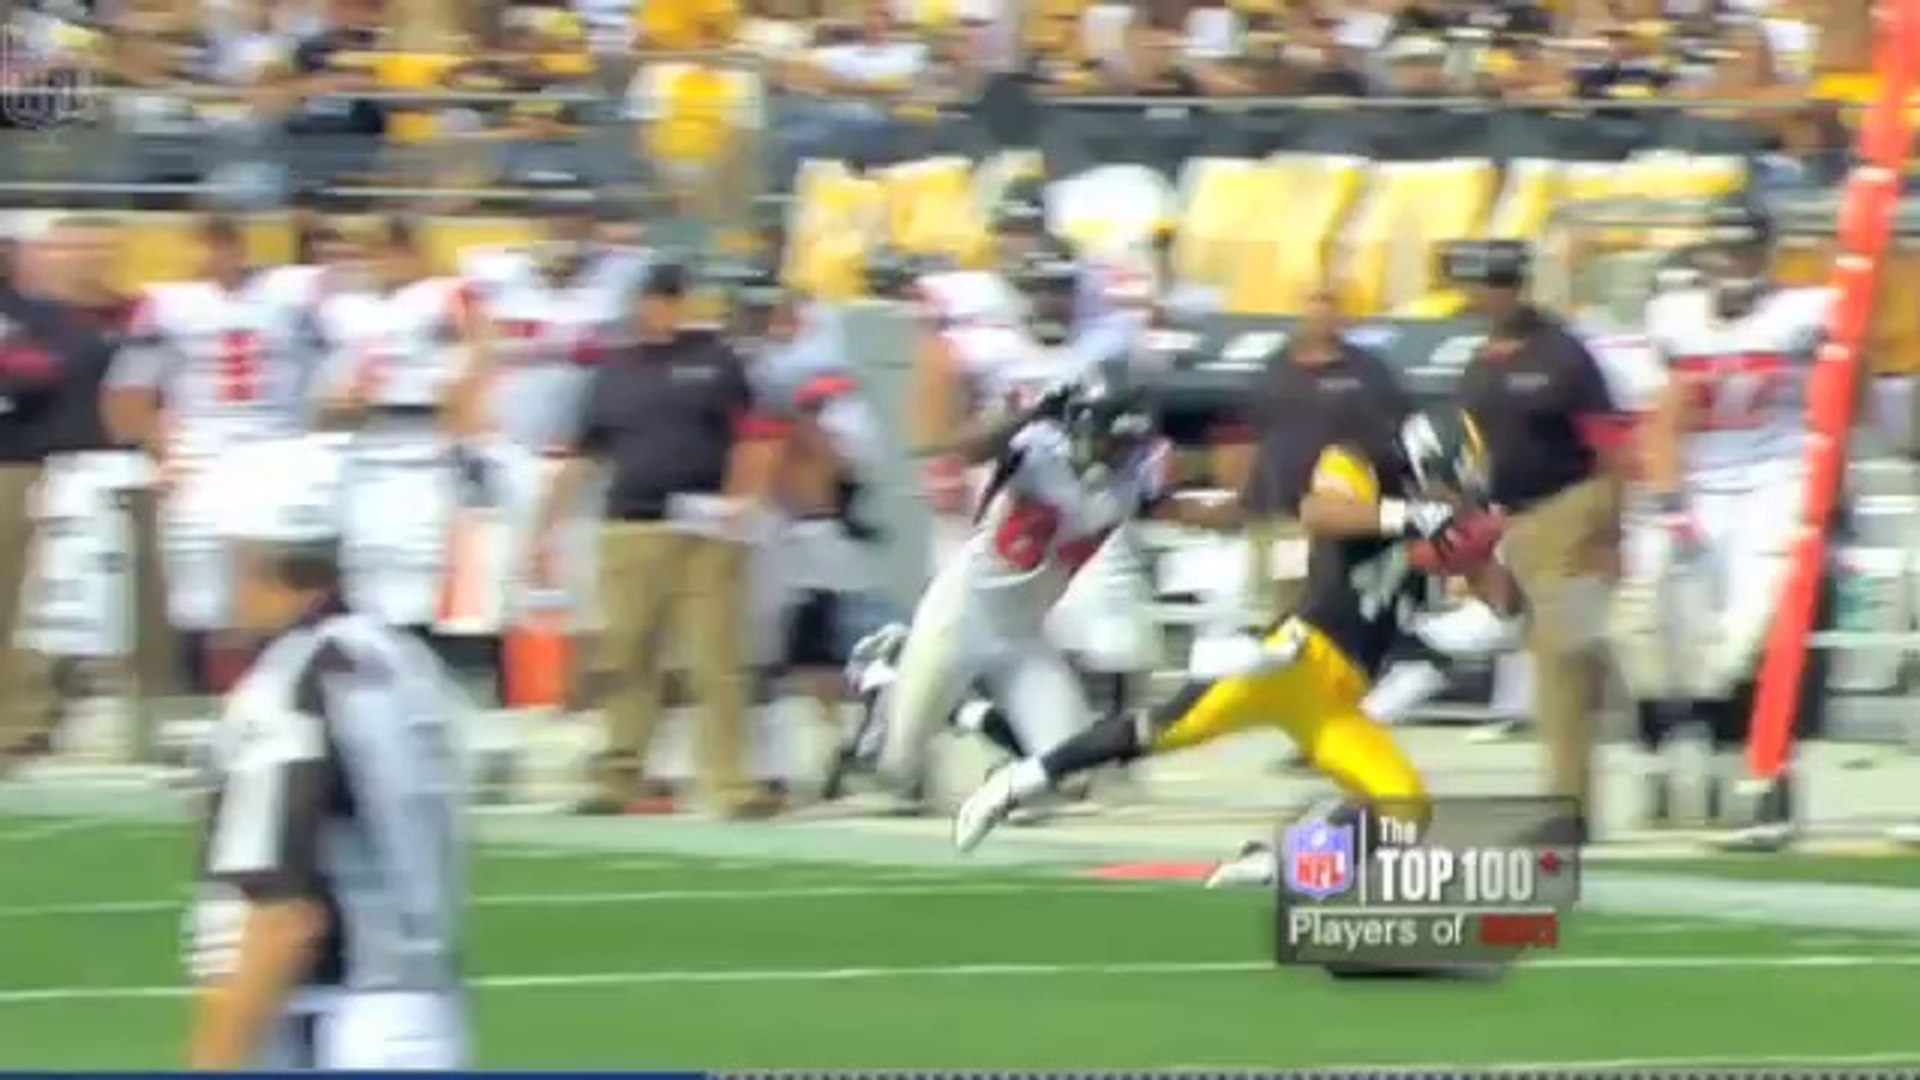 The Top 100 NFL Players of 2011 - 6# Troy Polamalu